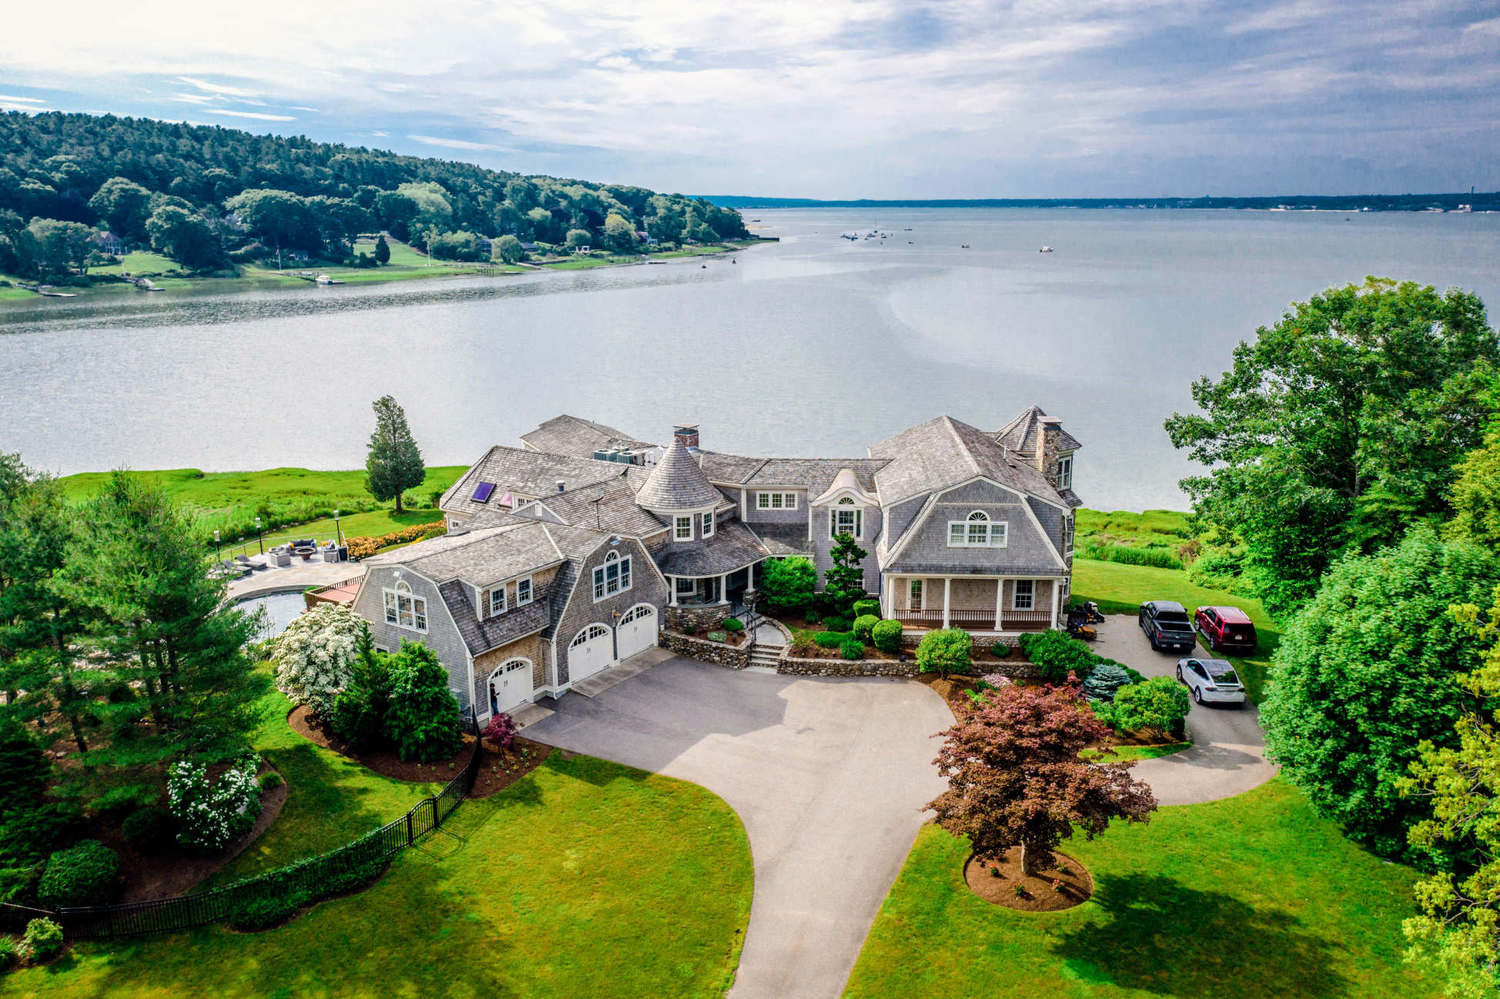 Coming Soon: Opulent Home of Chocolate Chip Cookie Inventor For Sale in Duxbury, MA